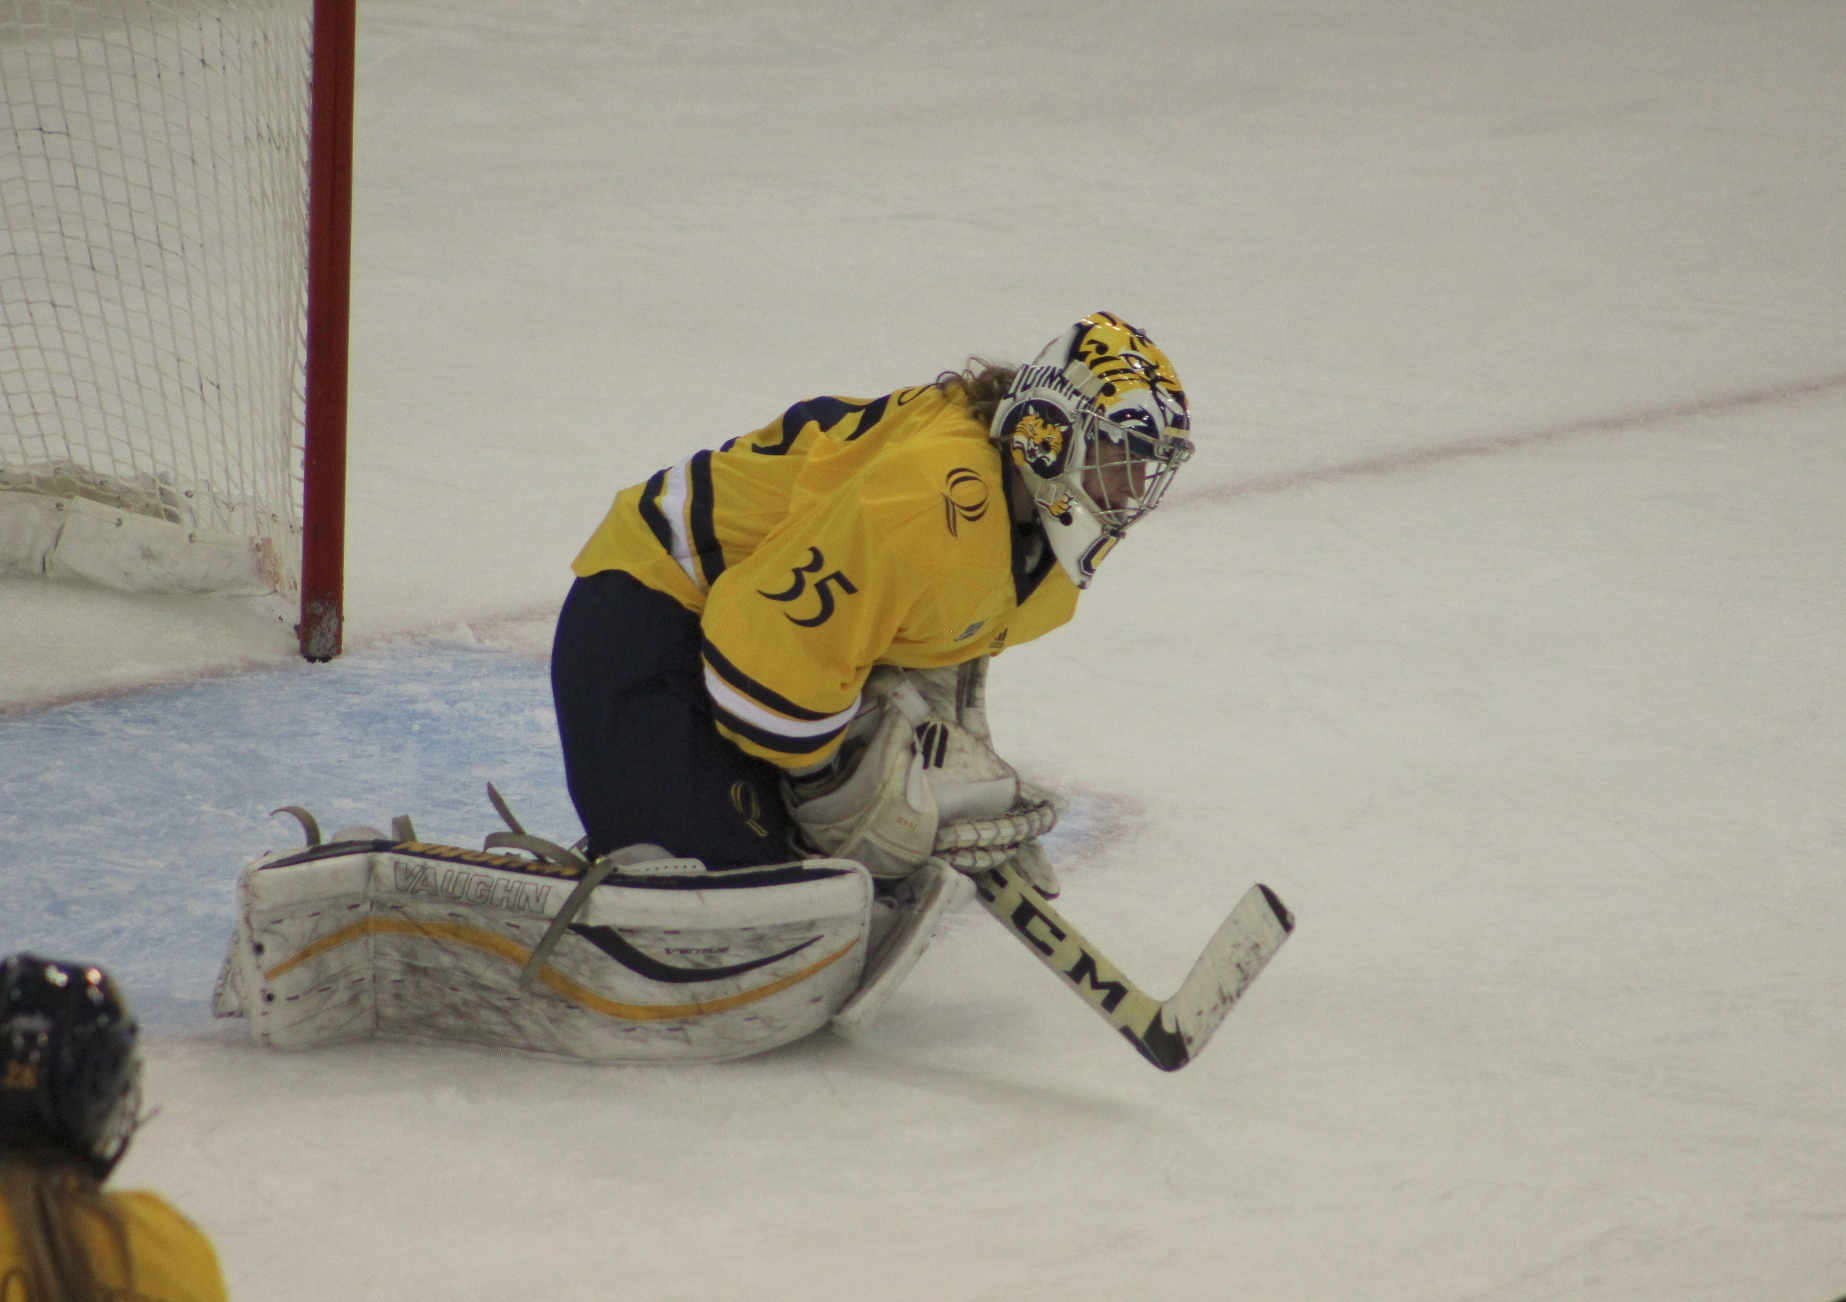 Quinnipiac women's hockey prevails with 1-0 win over Providence